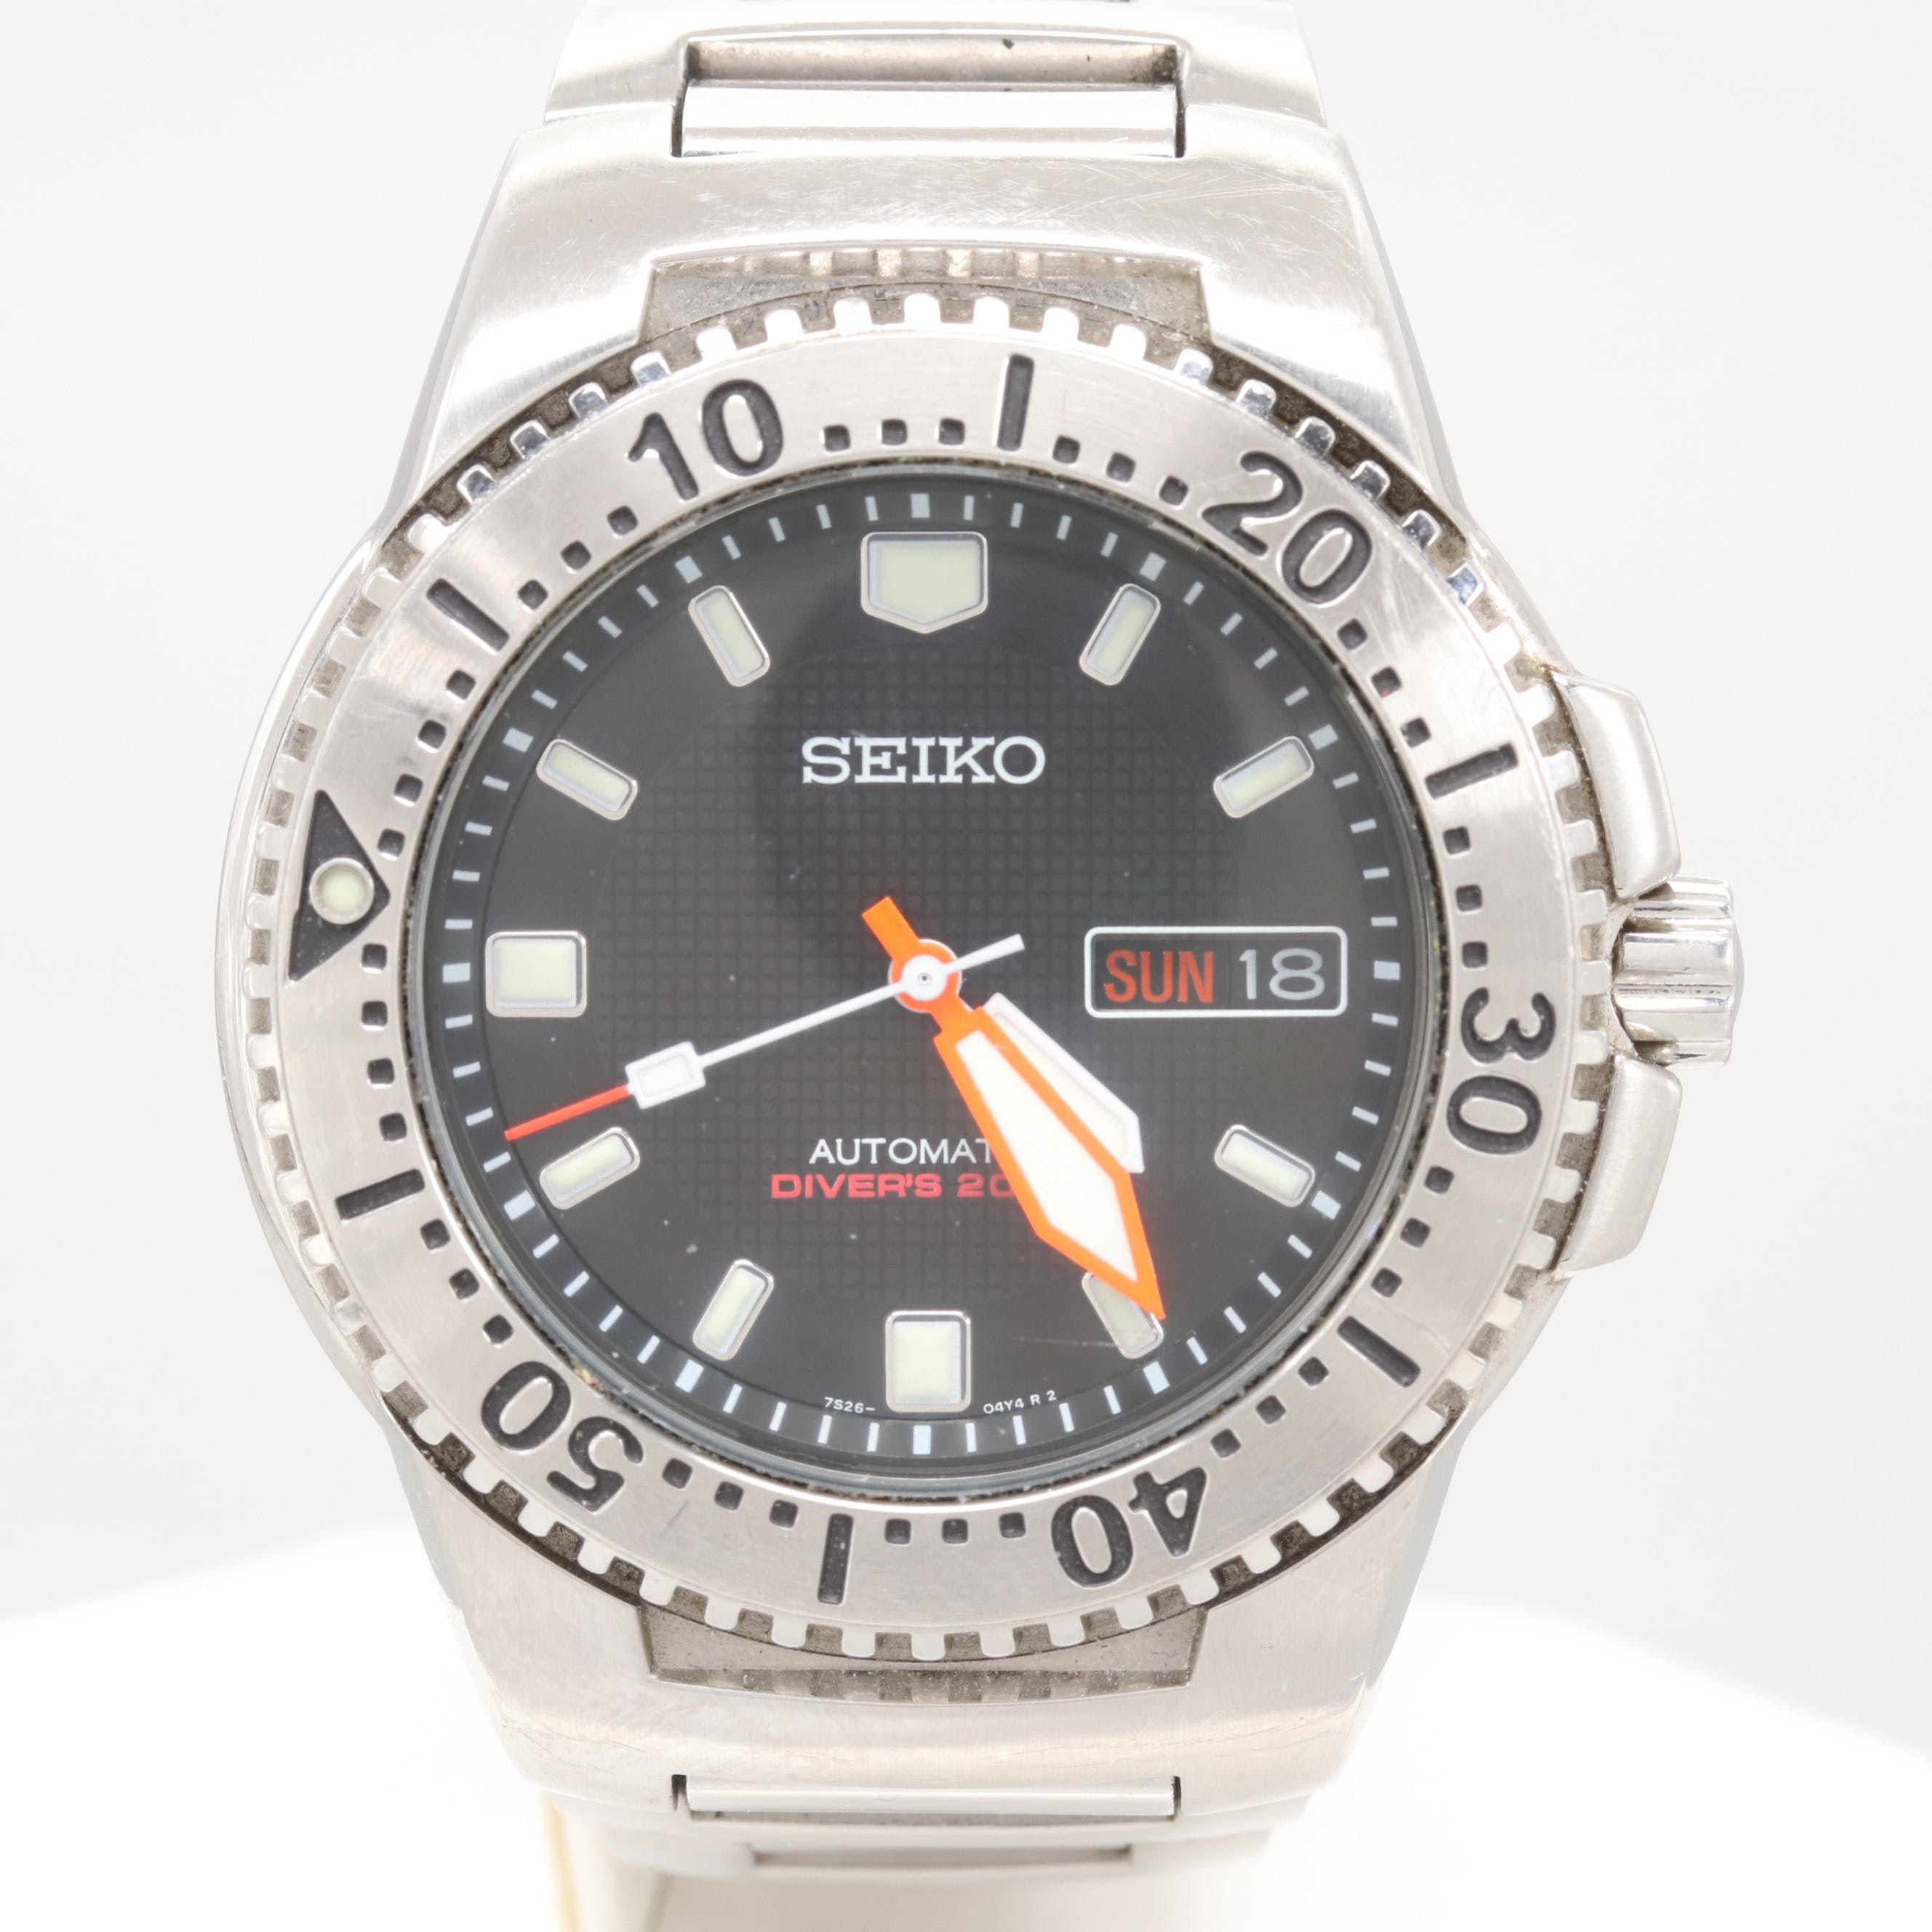 Seiko Stainless Steel Scuba Diver's 200M Automatic Wristwatch